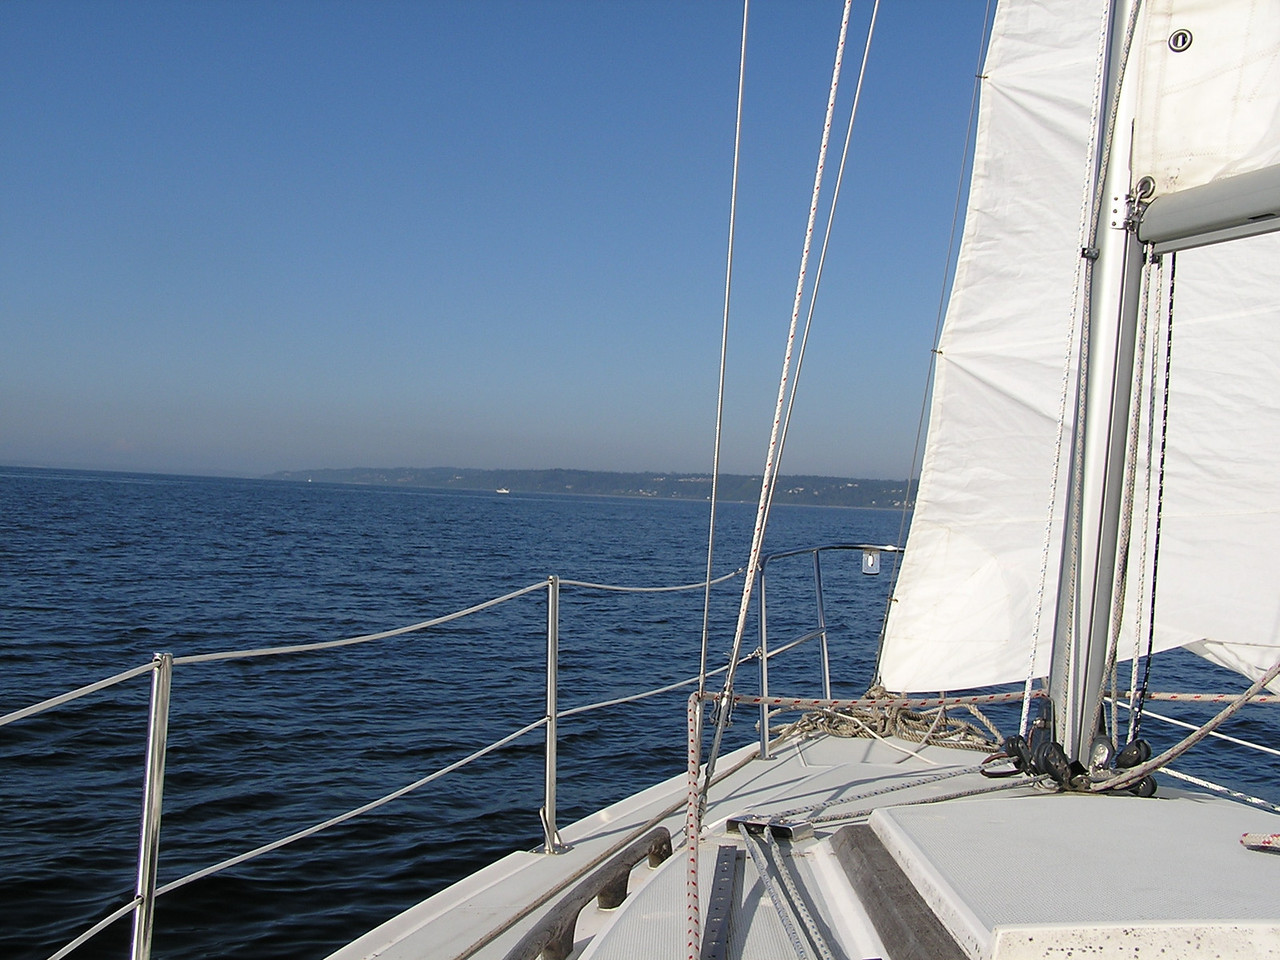 Summer sailing ... blue sky, blue water, nice breeze ... great day.